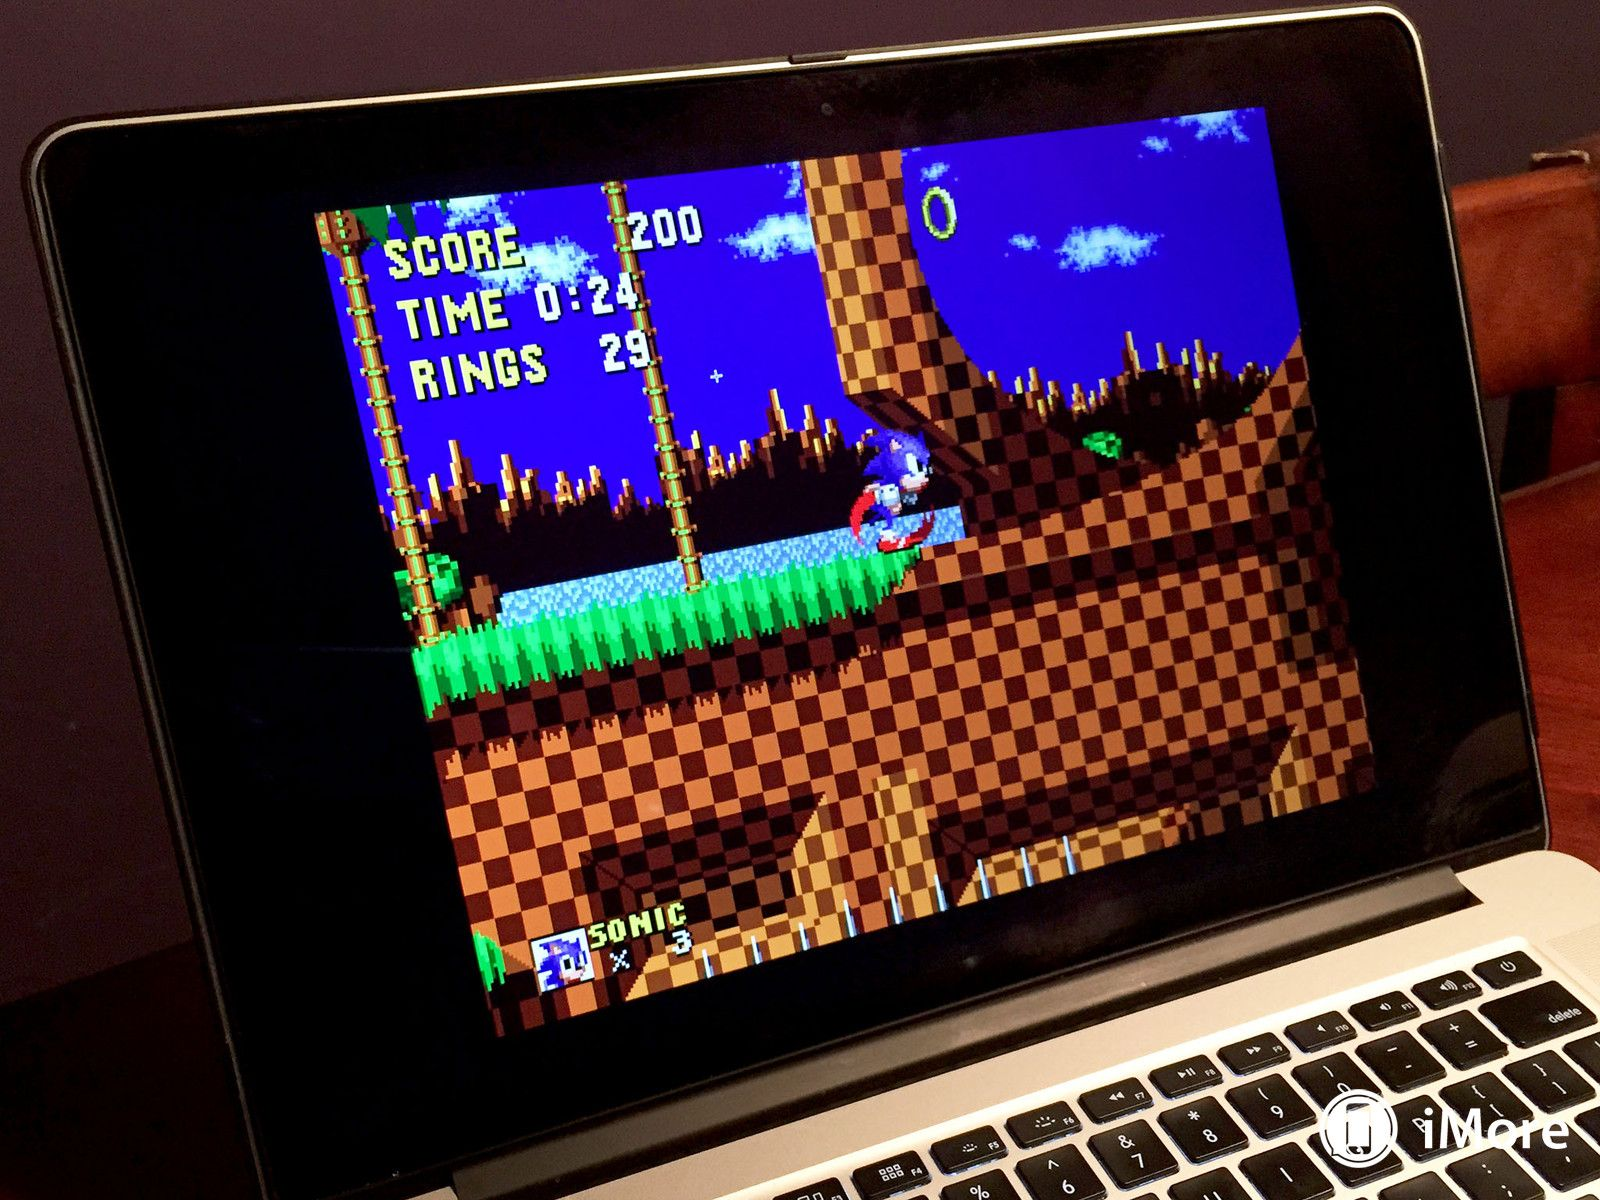 Run oldschool console games on the Mac with OpenEmu